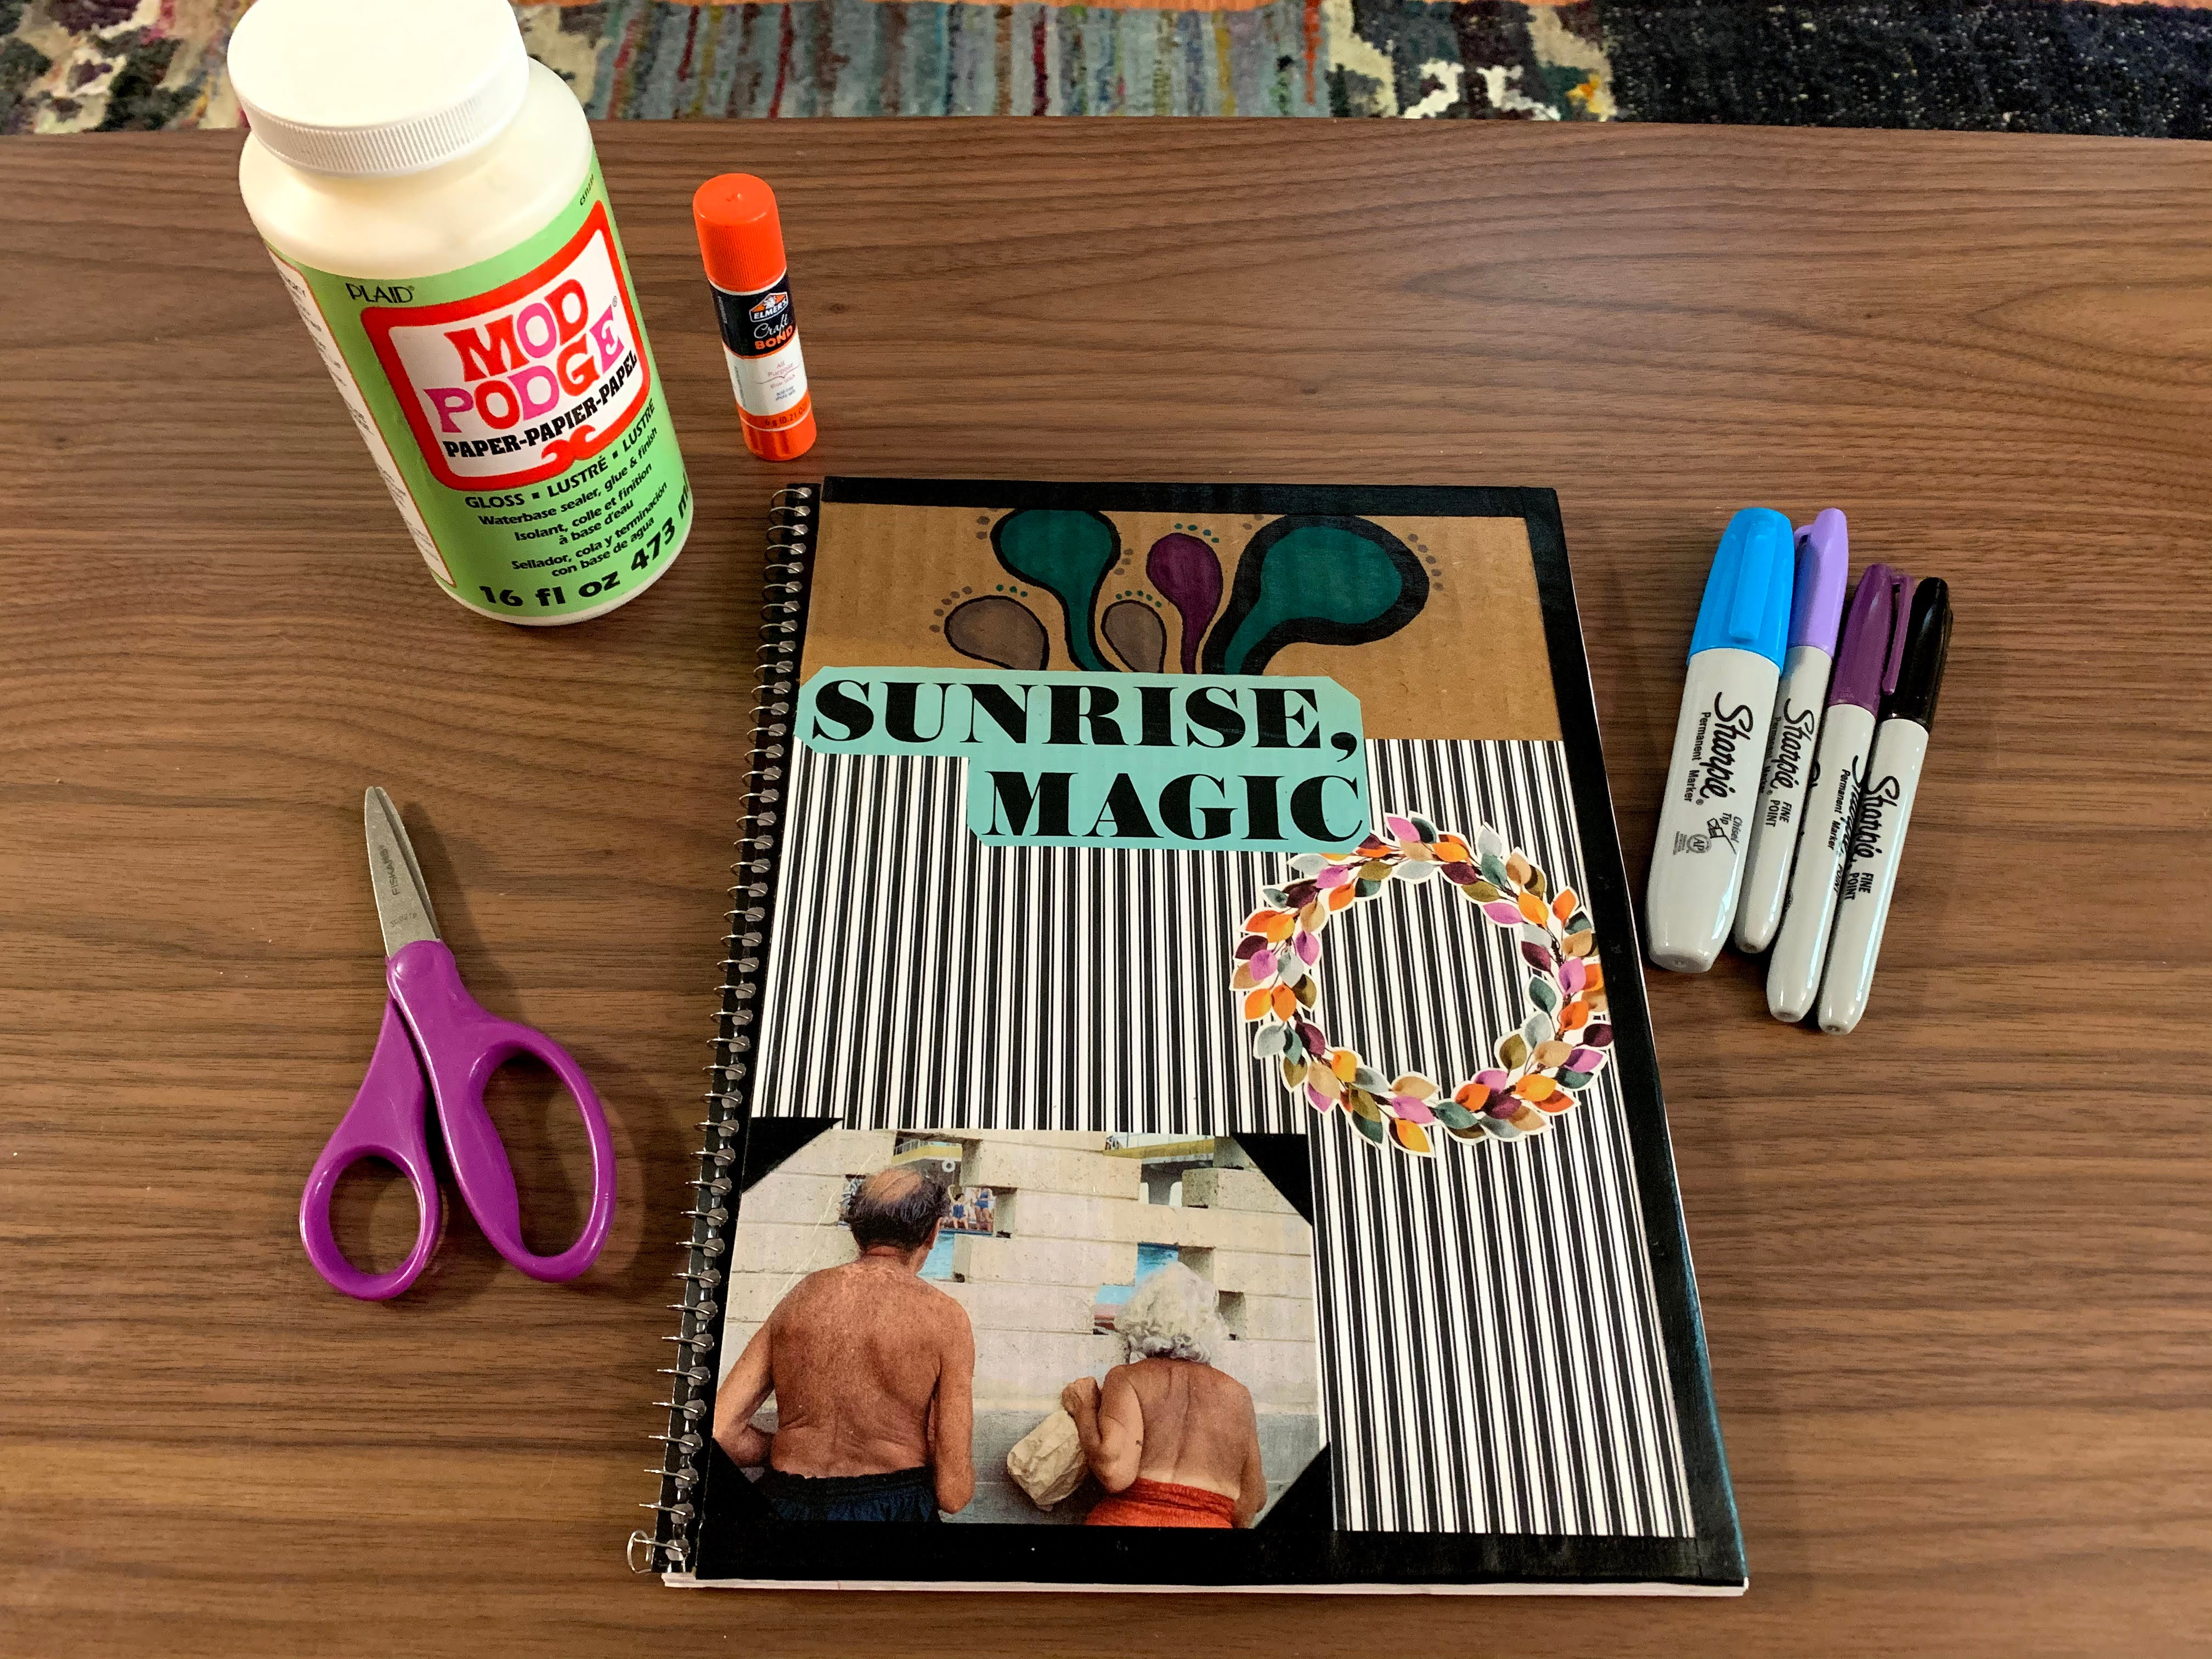 decorated notebook with scissors, glue, and markers nearby